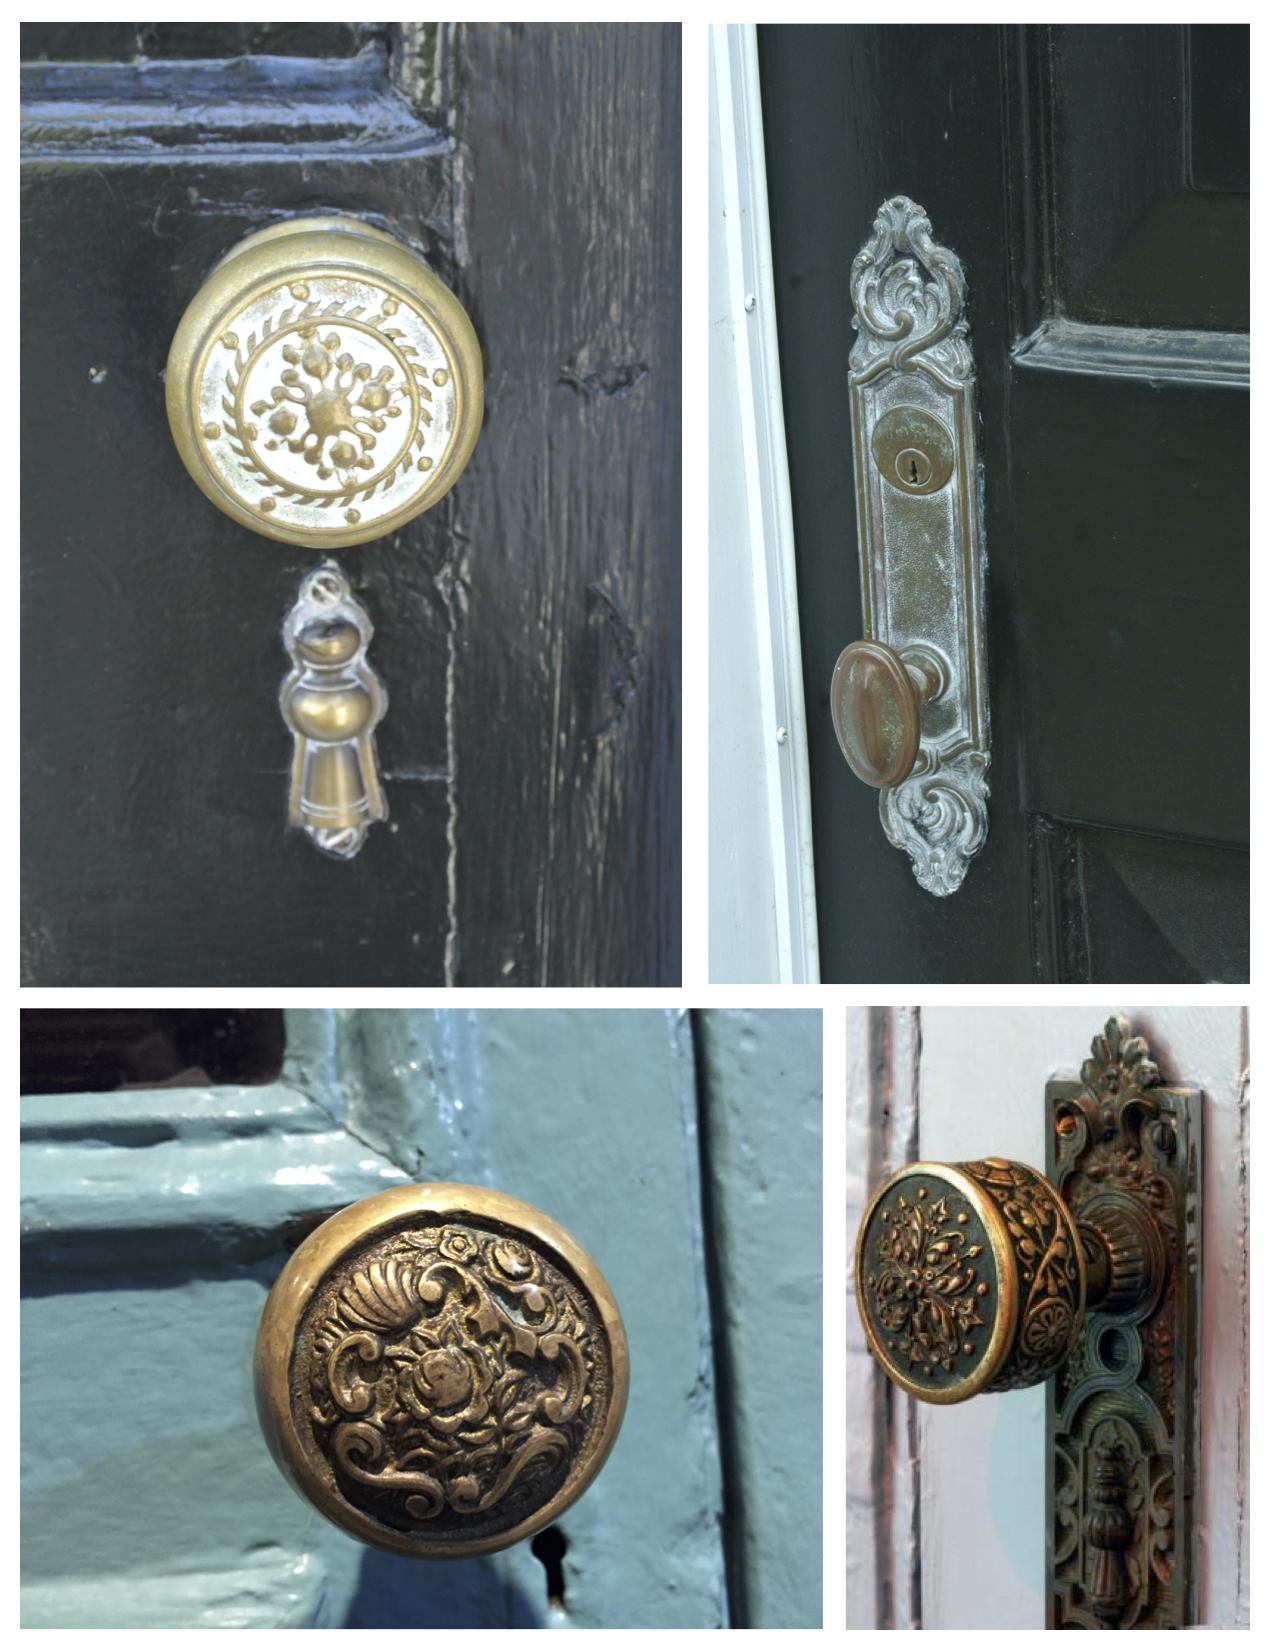 egg of polished features glass dummythis privacy brass knob passage solid plate antique old made classic doors set a dummy and door is reproduction knobs dart